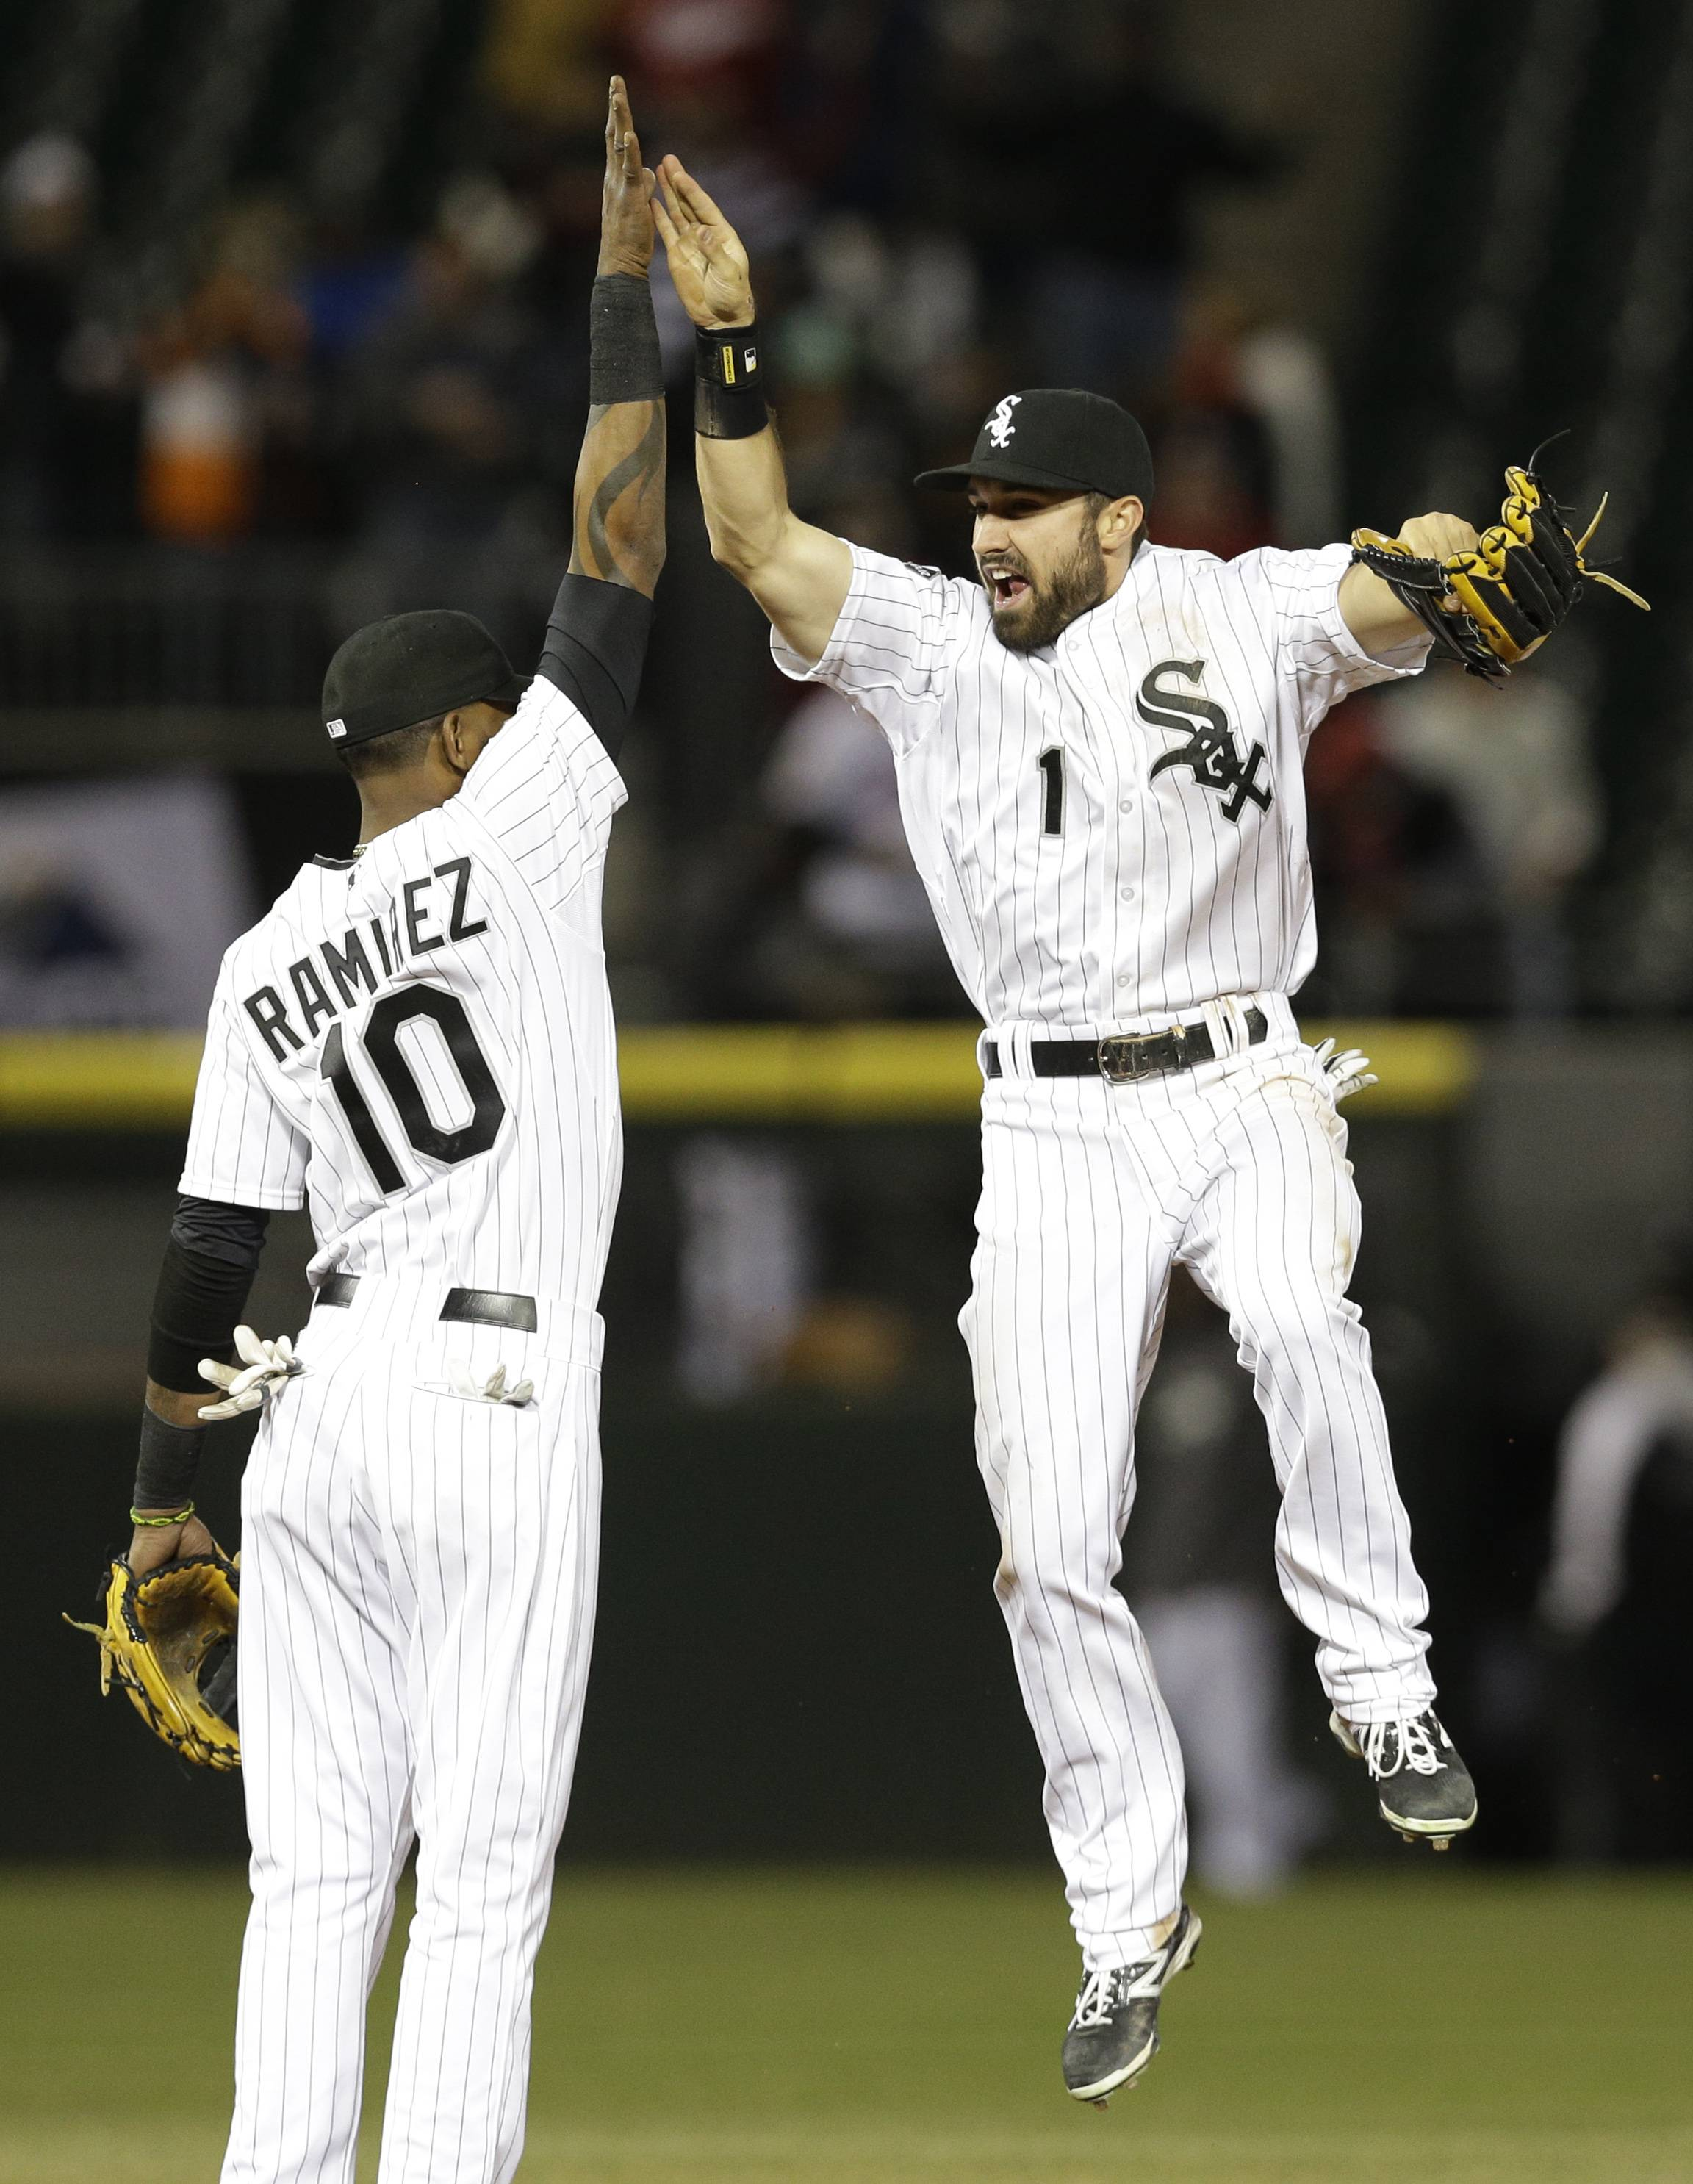 Adam Eaton, right, celebrates with Alexei Ramirez after they defeated the Cleveland Indians 7-3 in a baseball game in Chicago, Thursday, April 10, 2014.